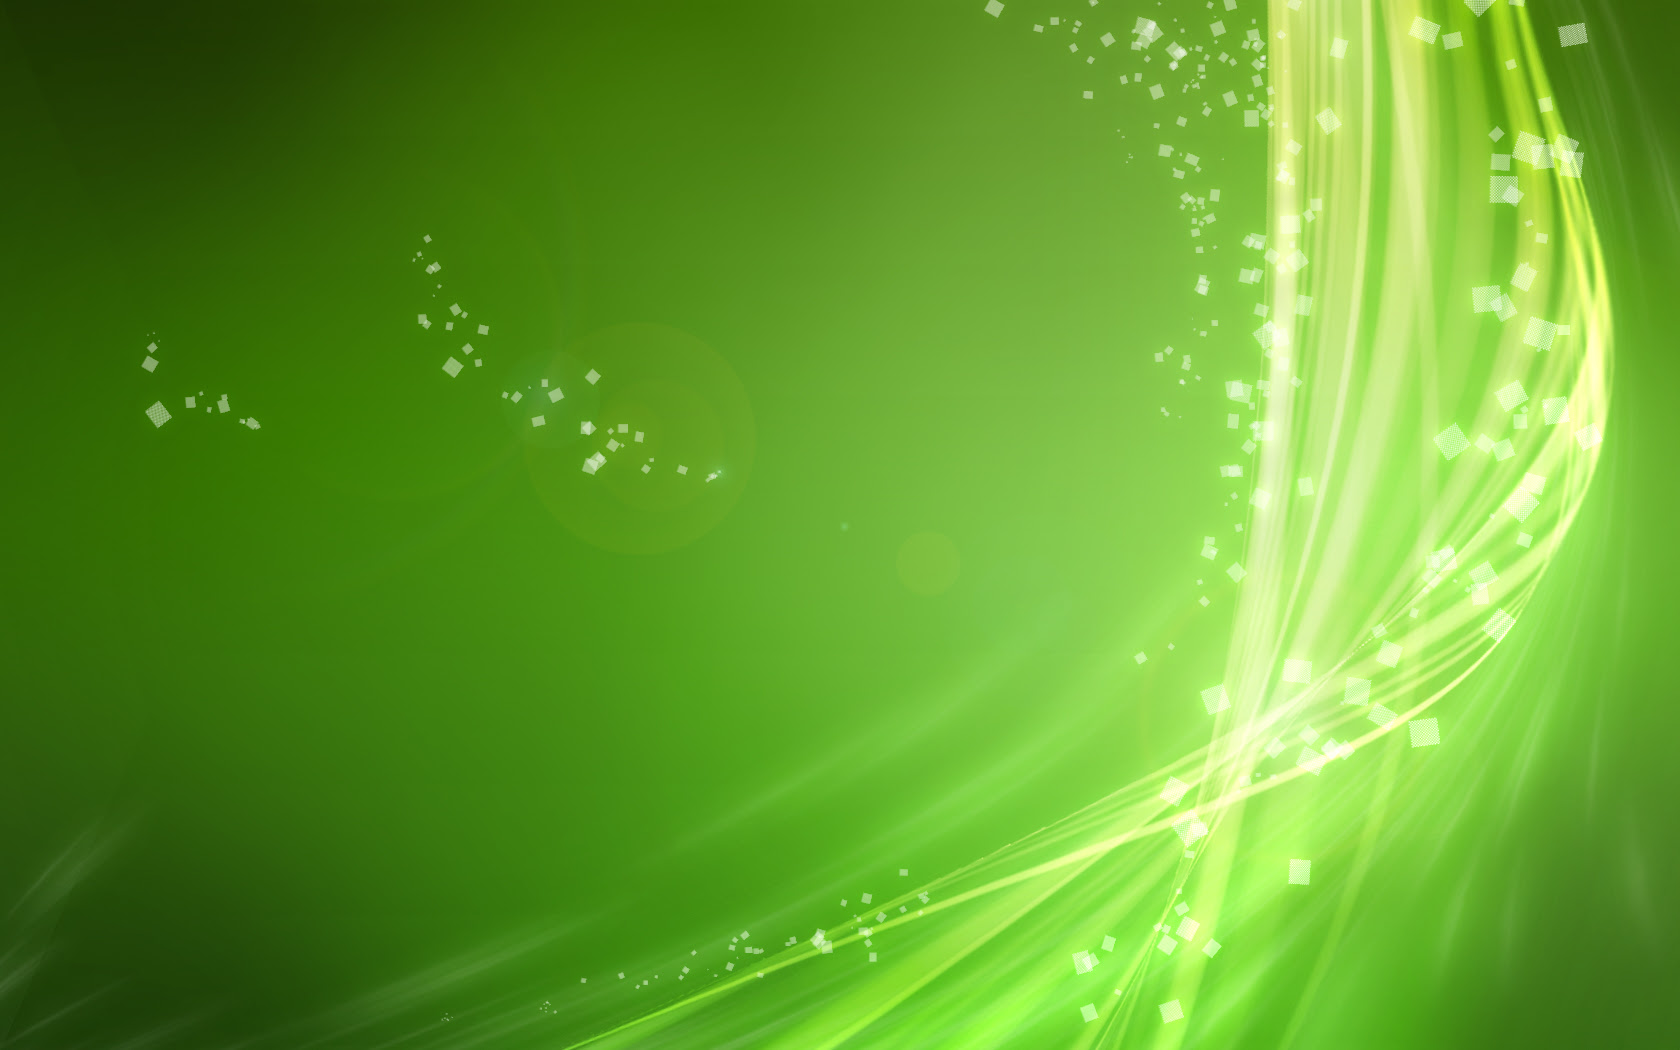 Abstract Green Background Wallpaper Hd 1080p Wallpapers